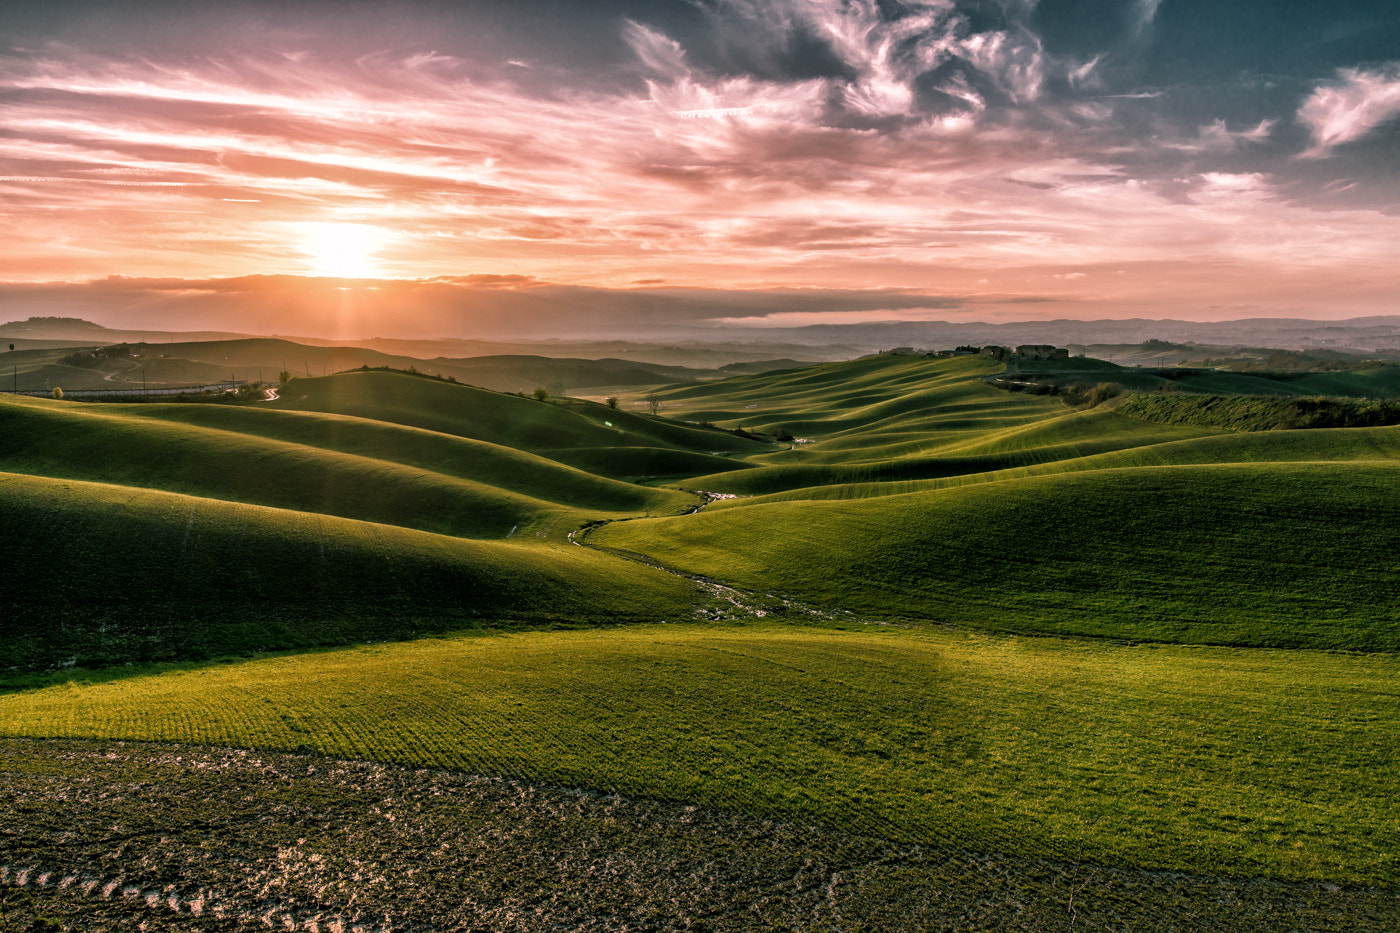 Photograph Yet another Tuscan Hills by Leonardo Acquisti on 500px